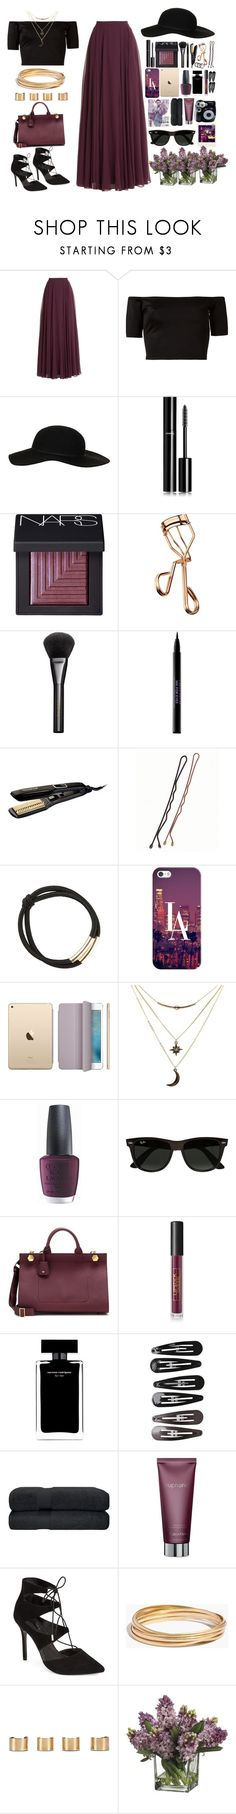 """""""Goodbye 2015"""" by pretima ❤ liked on Polyvore featuring Halston Heritage, Skinbiquini, Topshop, Chanel, NARS Cosmetics, Tweezerman, Gucci, Urban Decay, Rowenta and Casetify"""